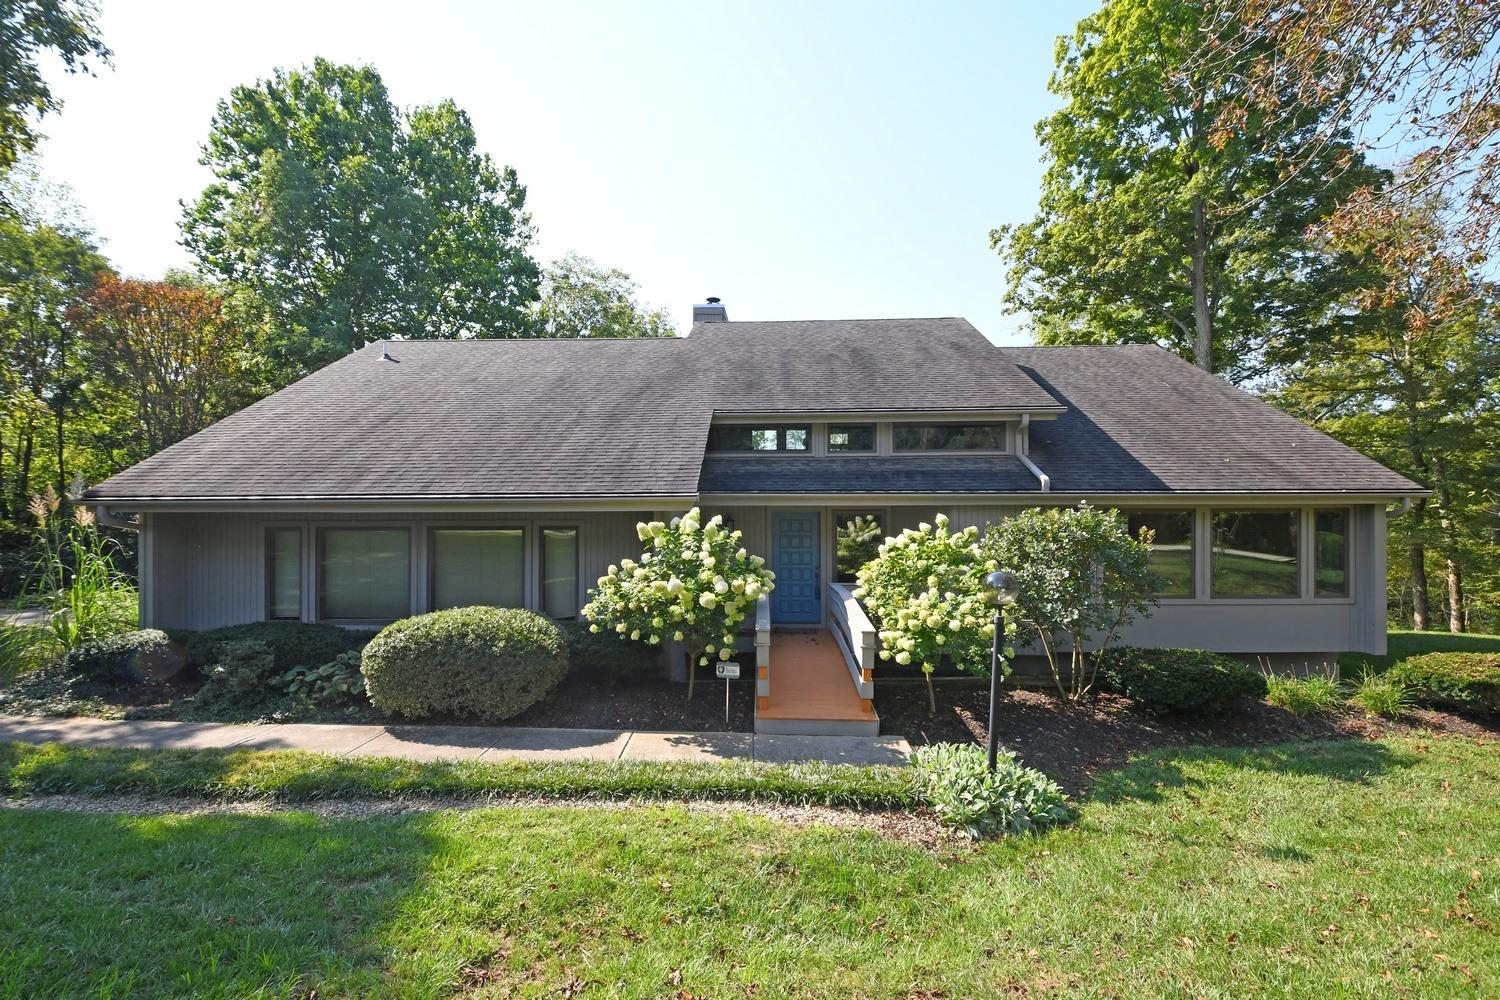 6238 Wald Ln Wayne Twp. (Clermont Co.), OH